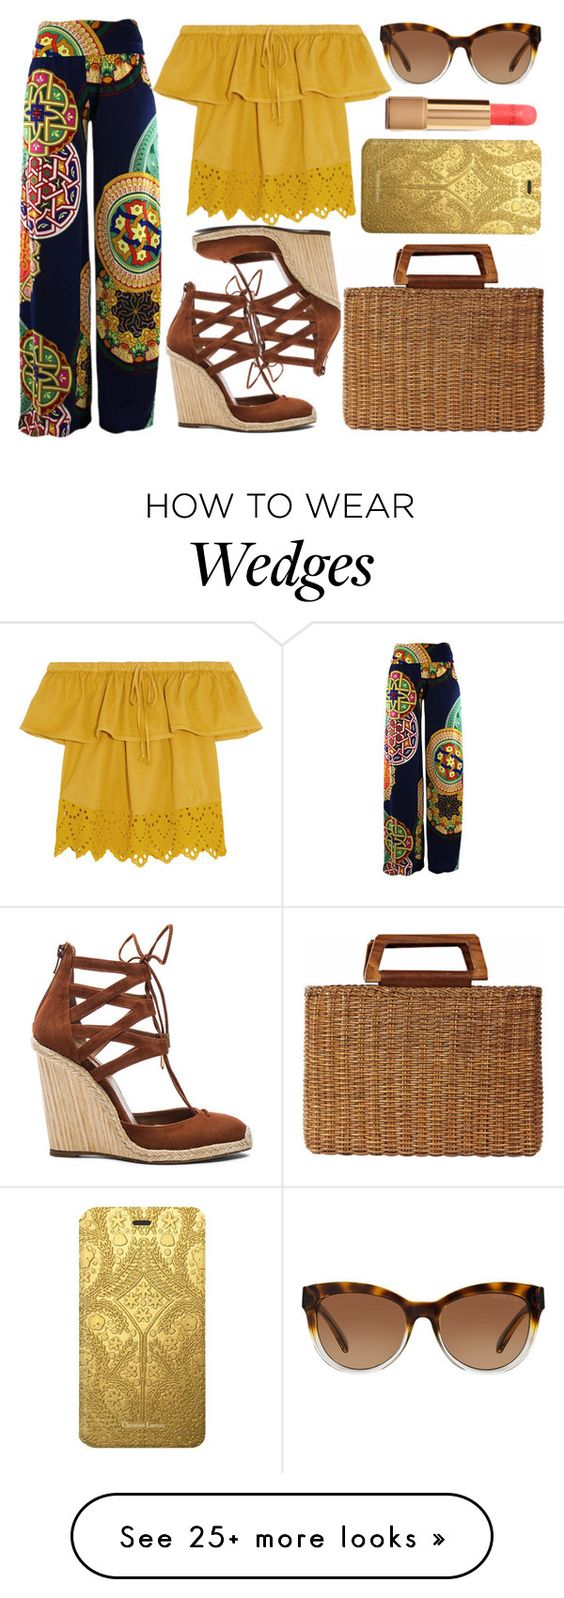 """""""street style"""" by sisaez on Polyvore featuring Madewell, Aquazzura, Michael Kors, Chanel, Christian Lacroix and Salvatore Ferragamo"""